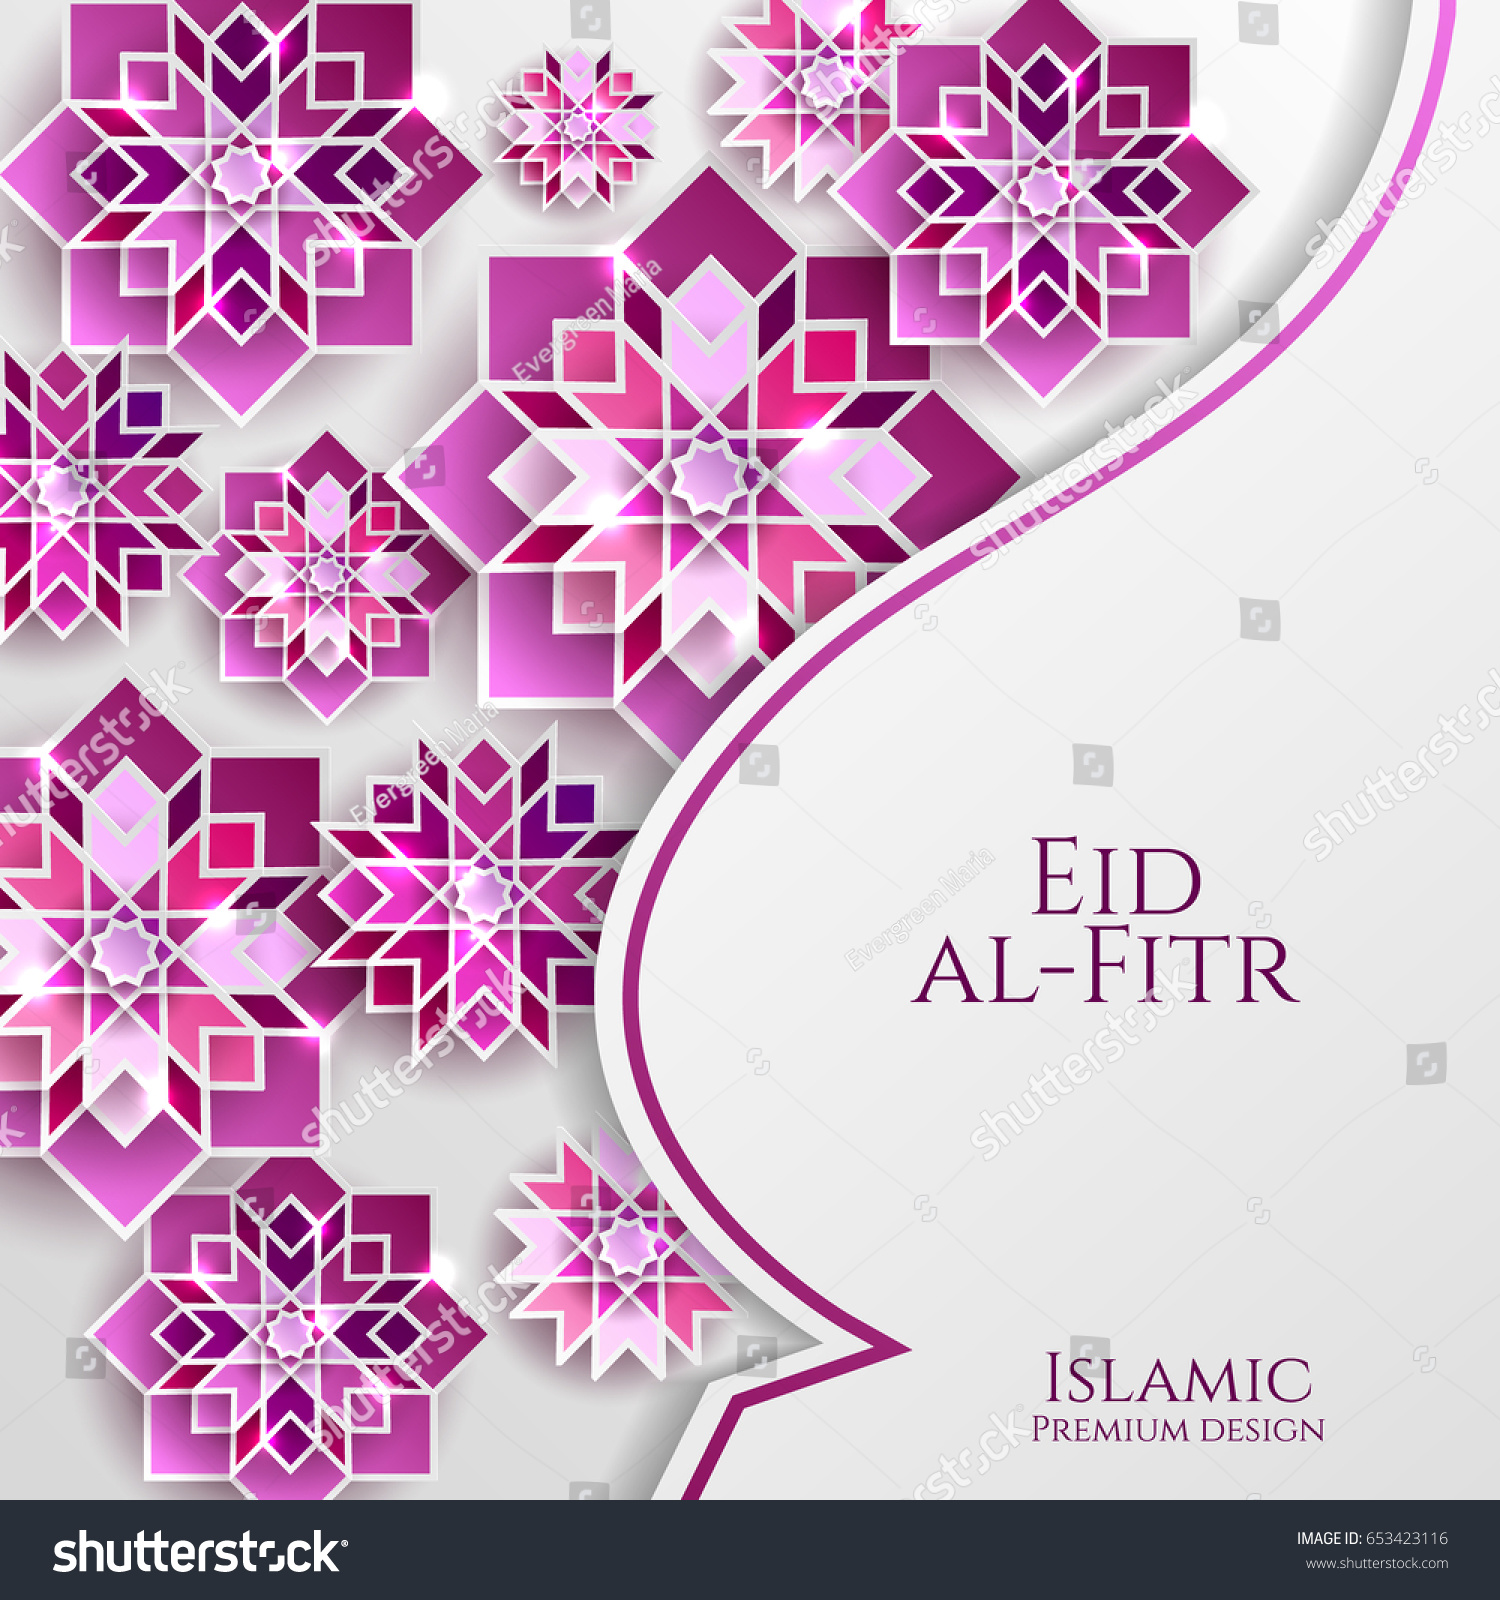 Most Inspiring Iftar Eid Al-Fitr Decorations - stock-vector-feast-of-breaking-the-fast-eid-al-fitr-iftar-celebrate-greeting-card-with-paper-cutting-style-with-653423116  Snapshot_675685 .jpg